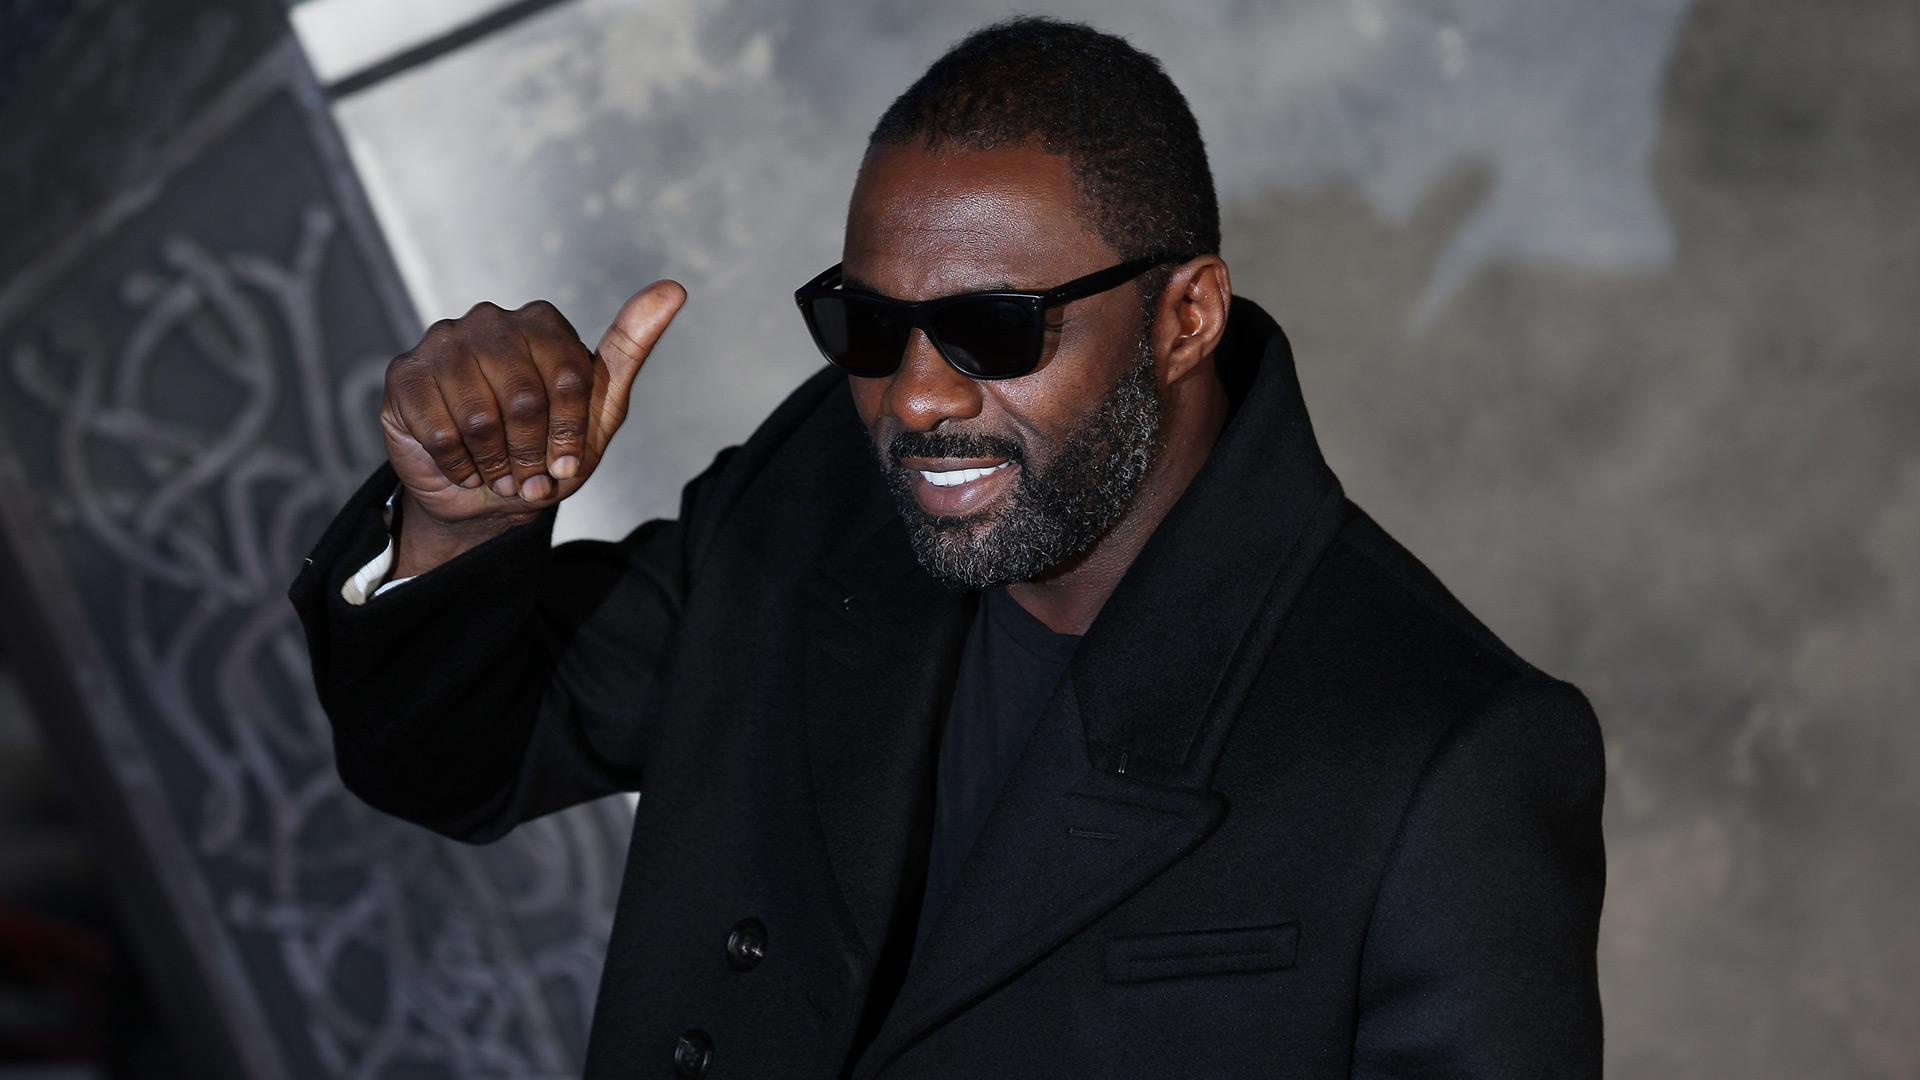 If you are looking for a male nanny, you should consider Idris Elba